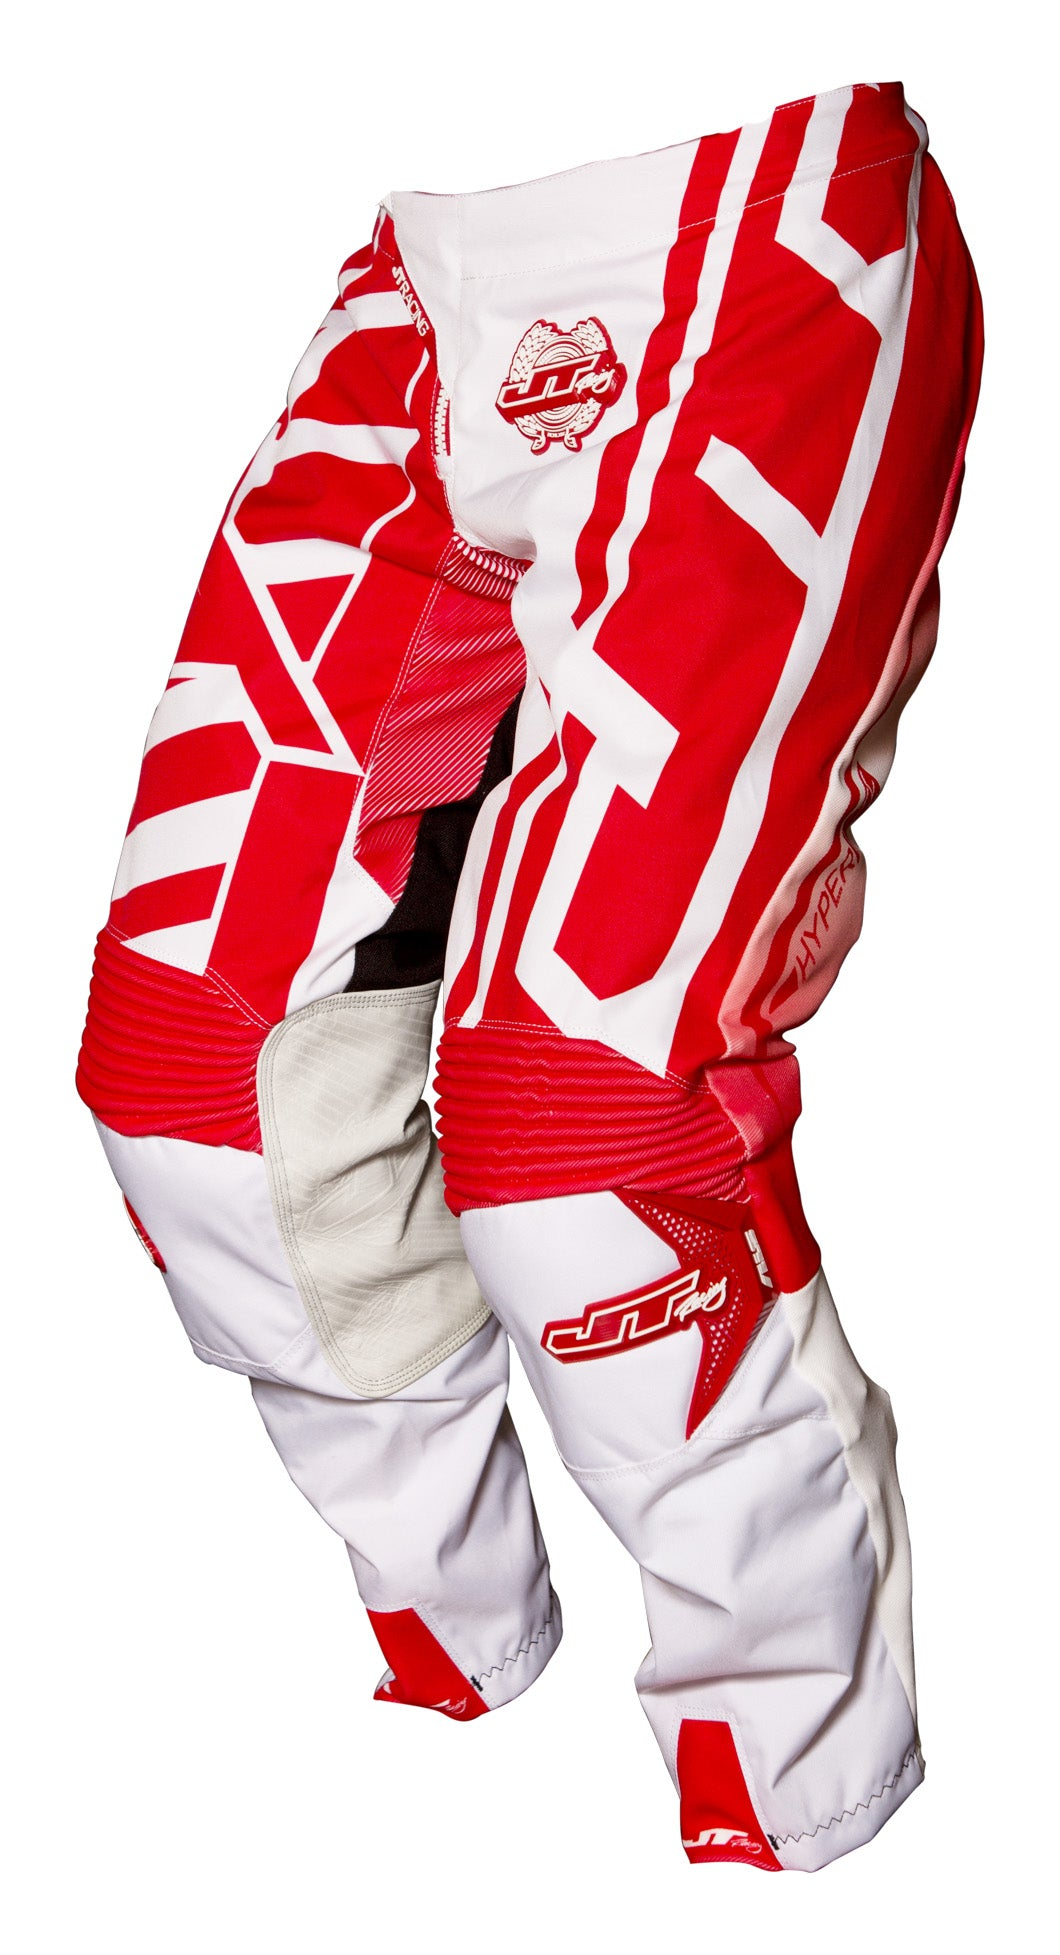 JT RACING USA-2017 Hyperlite Breaker Pants, Red/White